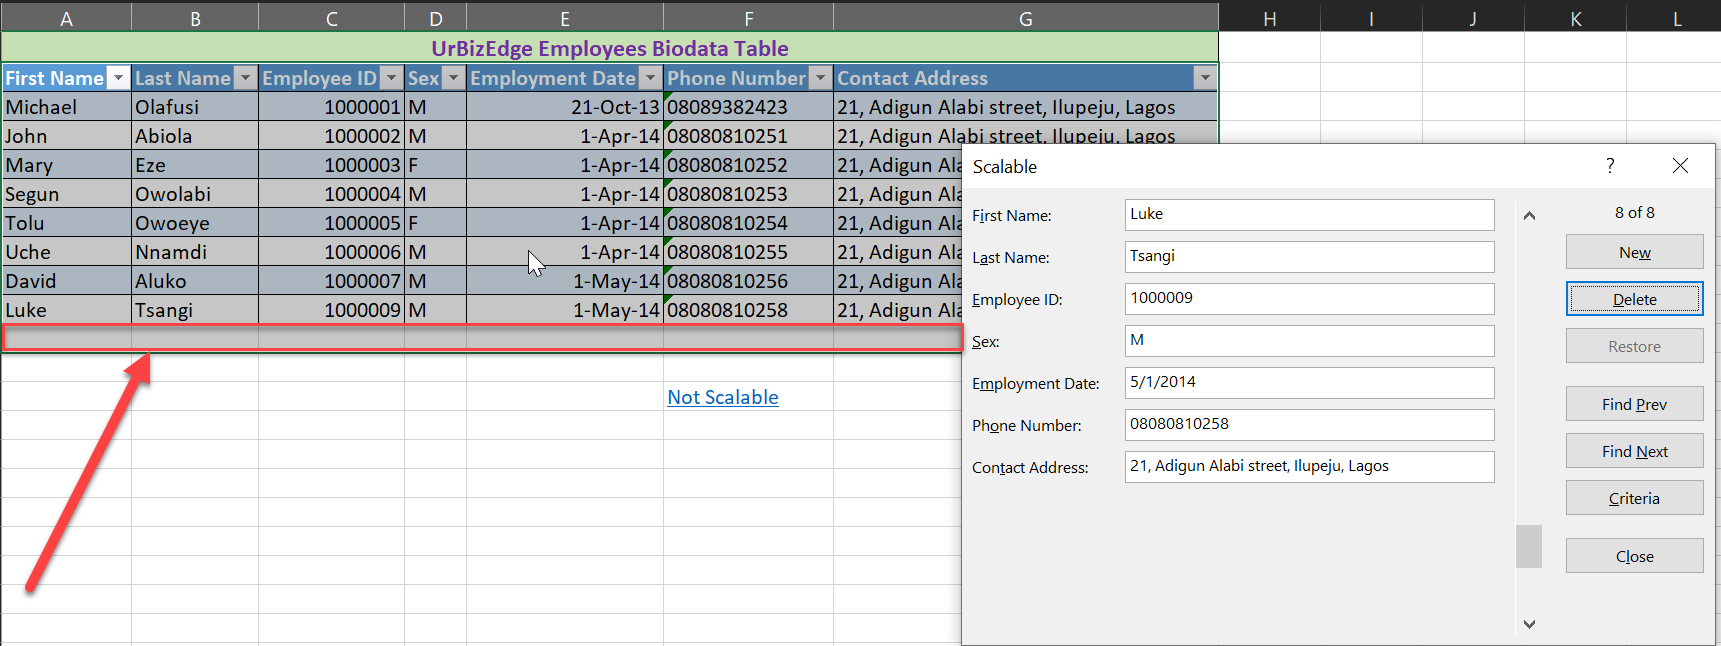 Create data entry form in Excel without using VBA or Coding